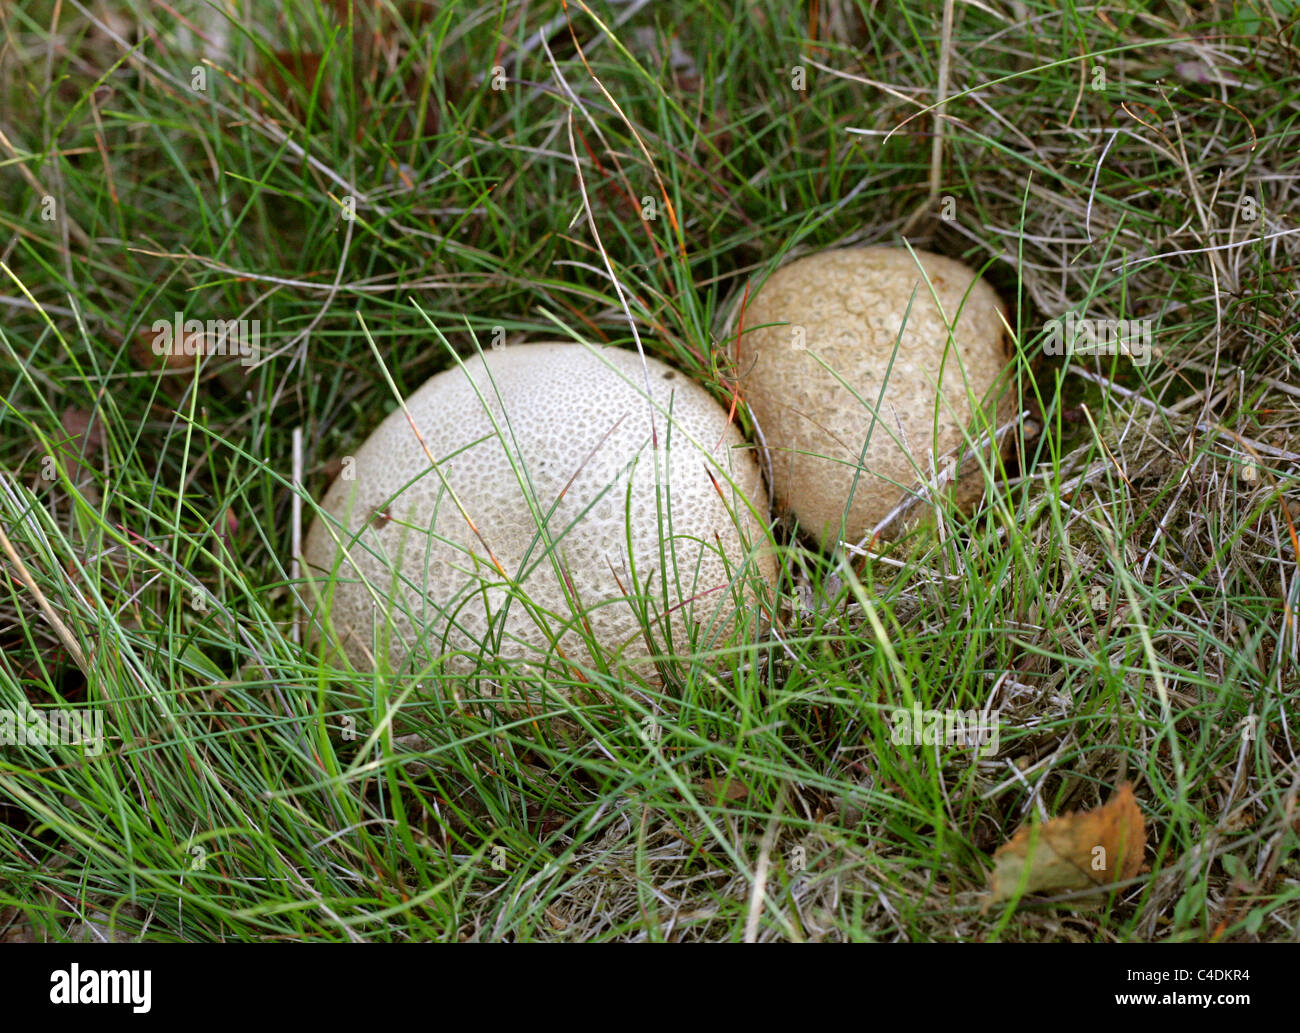 Scaly Earth Ball Fungus, Scleroderma verrucosum, Sclerodermataceae. Rammamere Heath, Bedfordshire, UK. - Stock Image